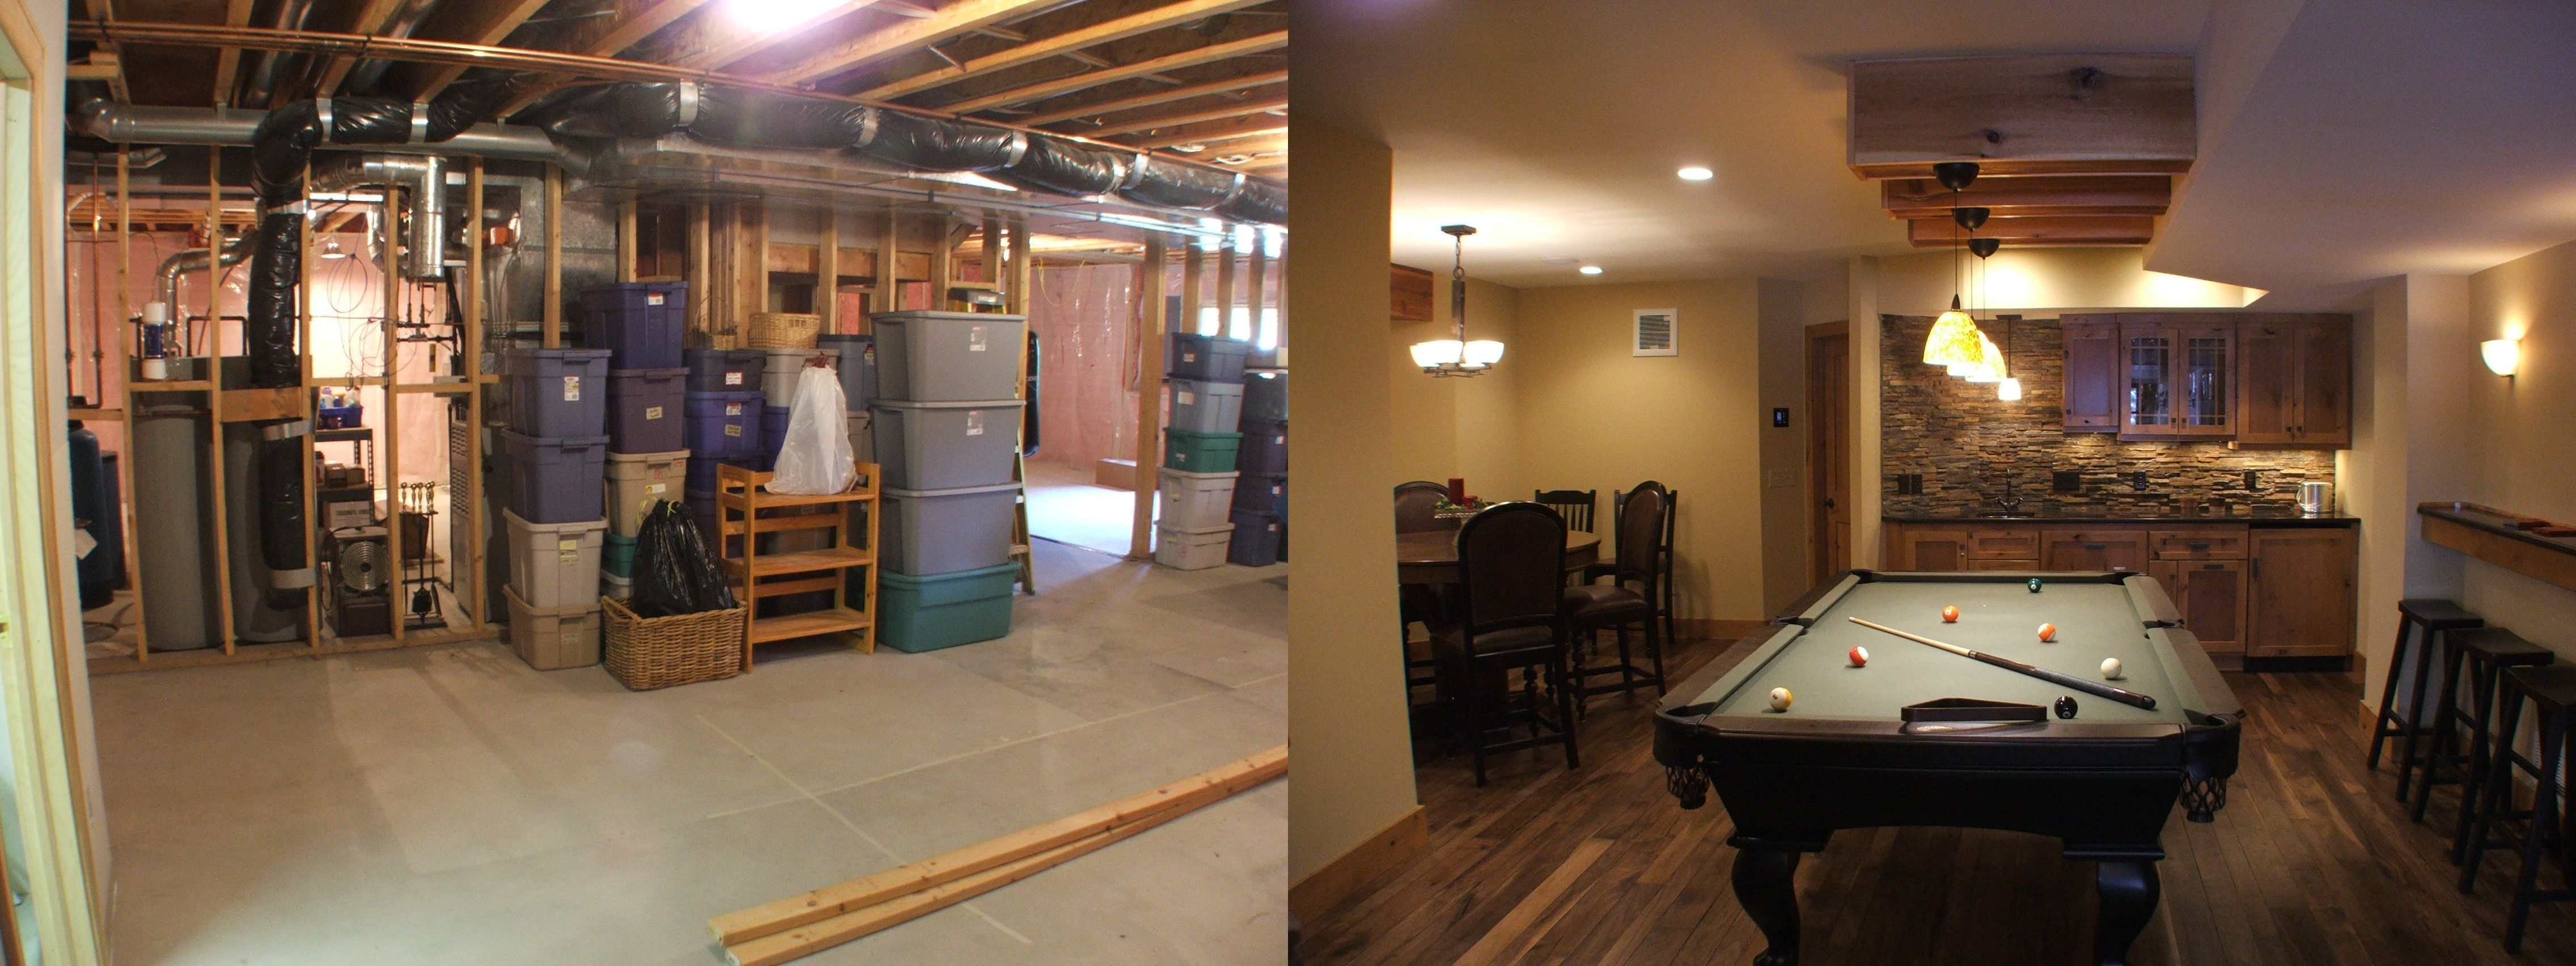 Basement Remodel Before And After Photos